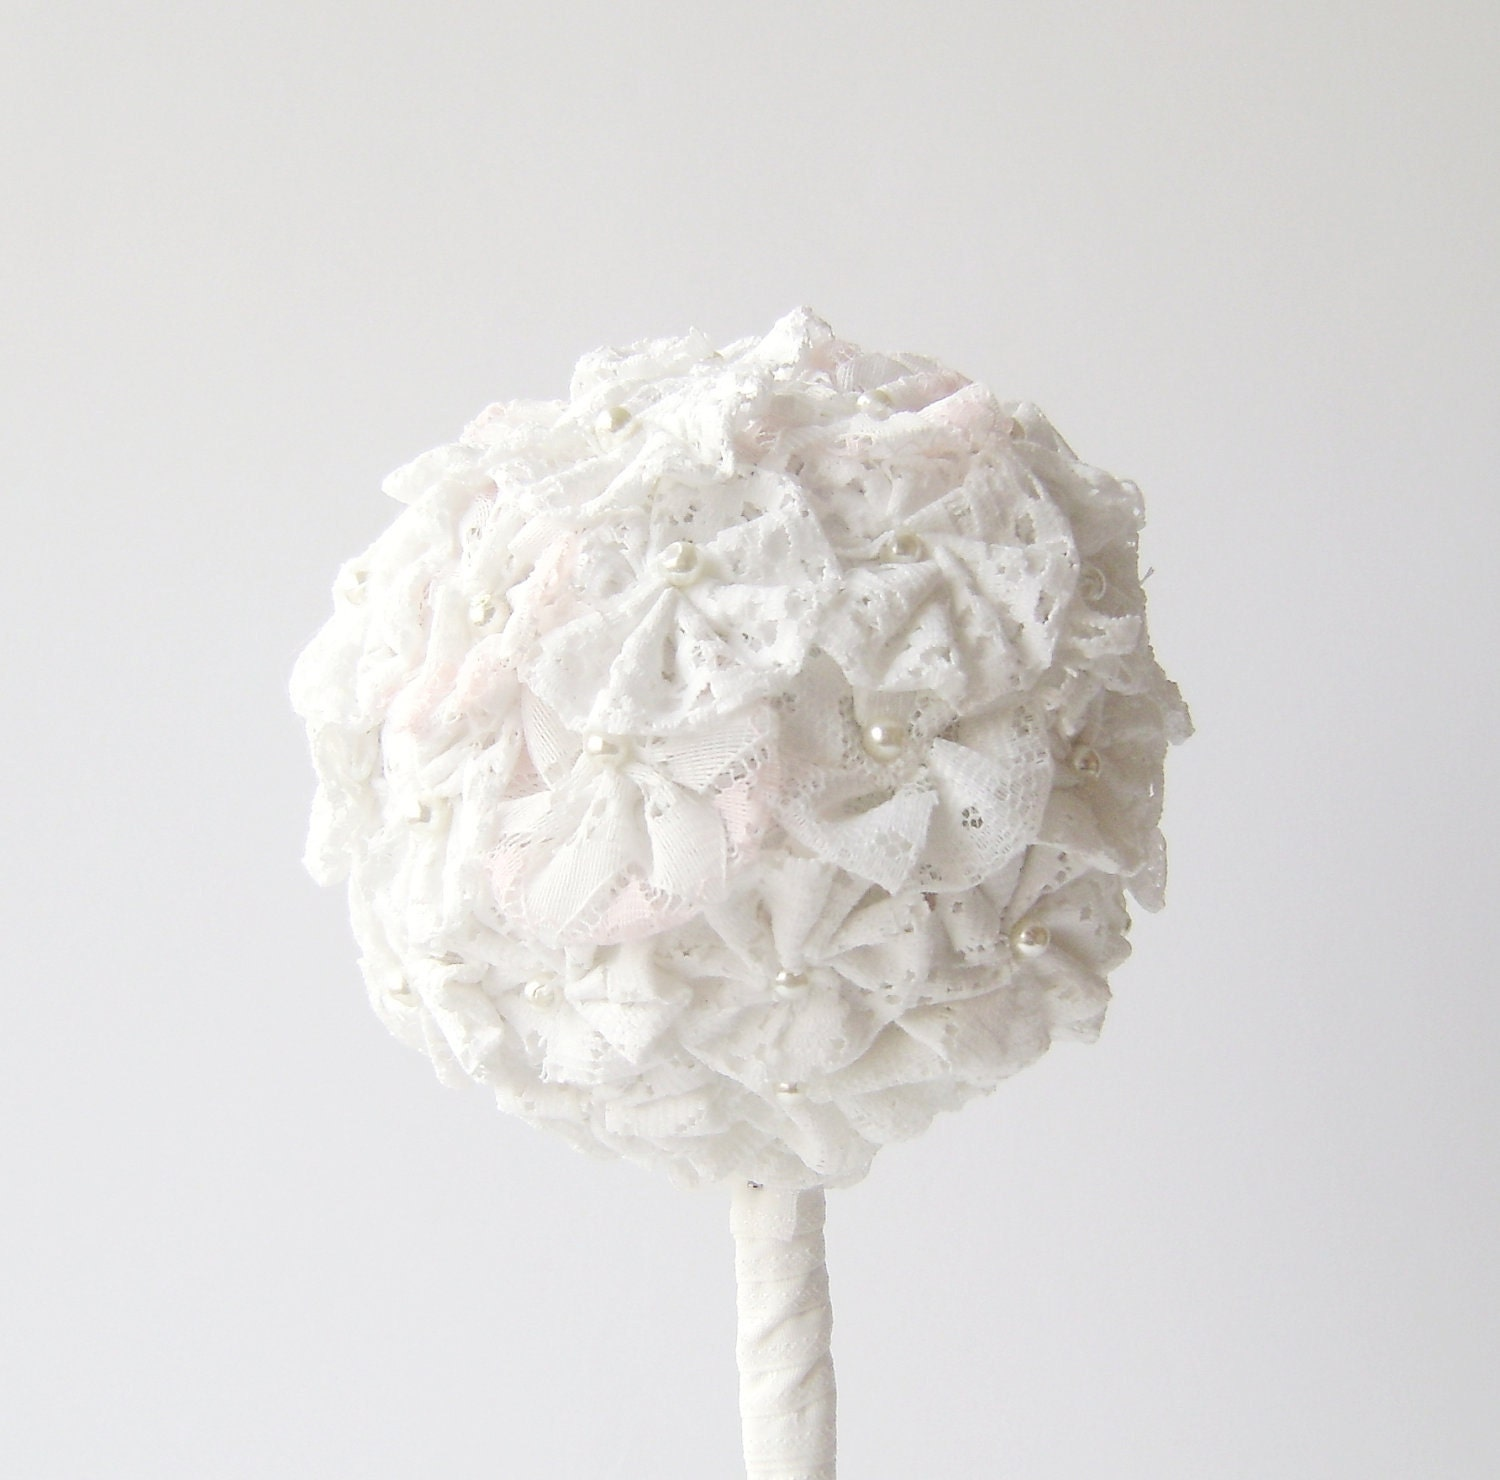 Wedding Flower Decoration / White Lace Flowers Topiary Ball / Shabby chic Decor - NataliaDecor